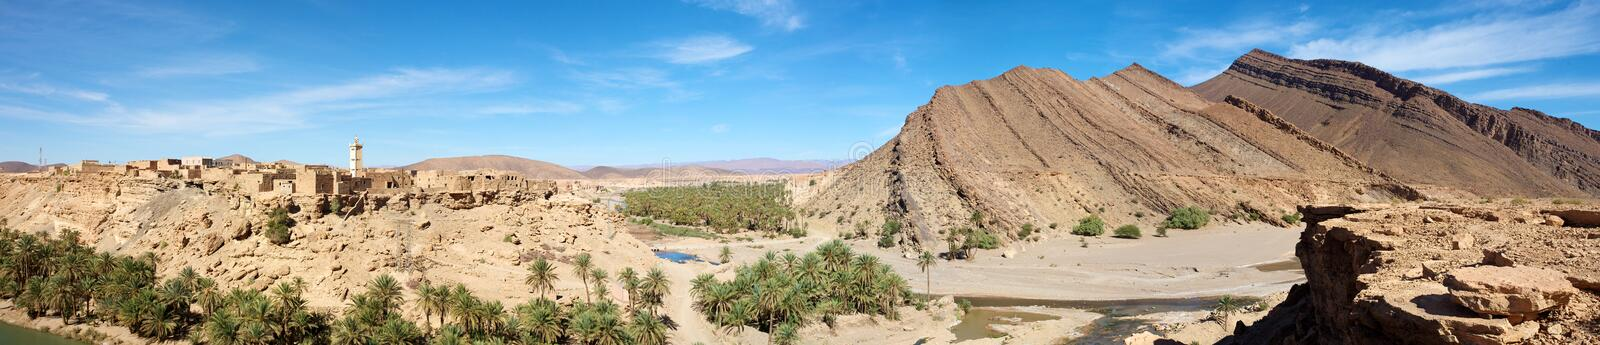 Wild Landscape In Morocco Royalty Free Stock Images